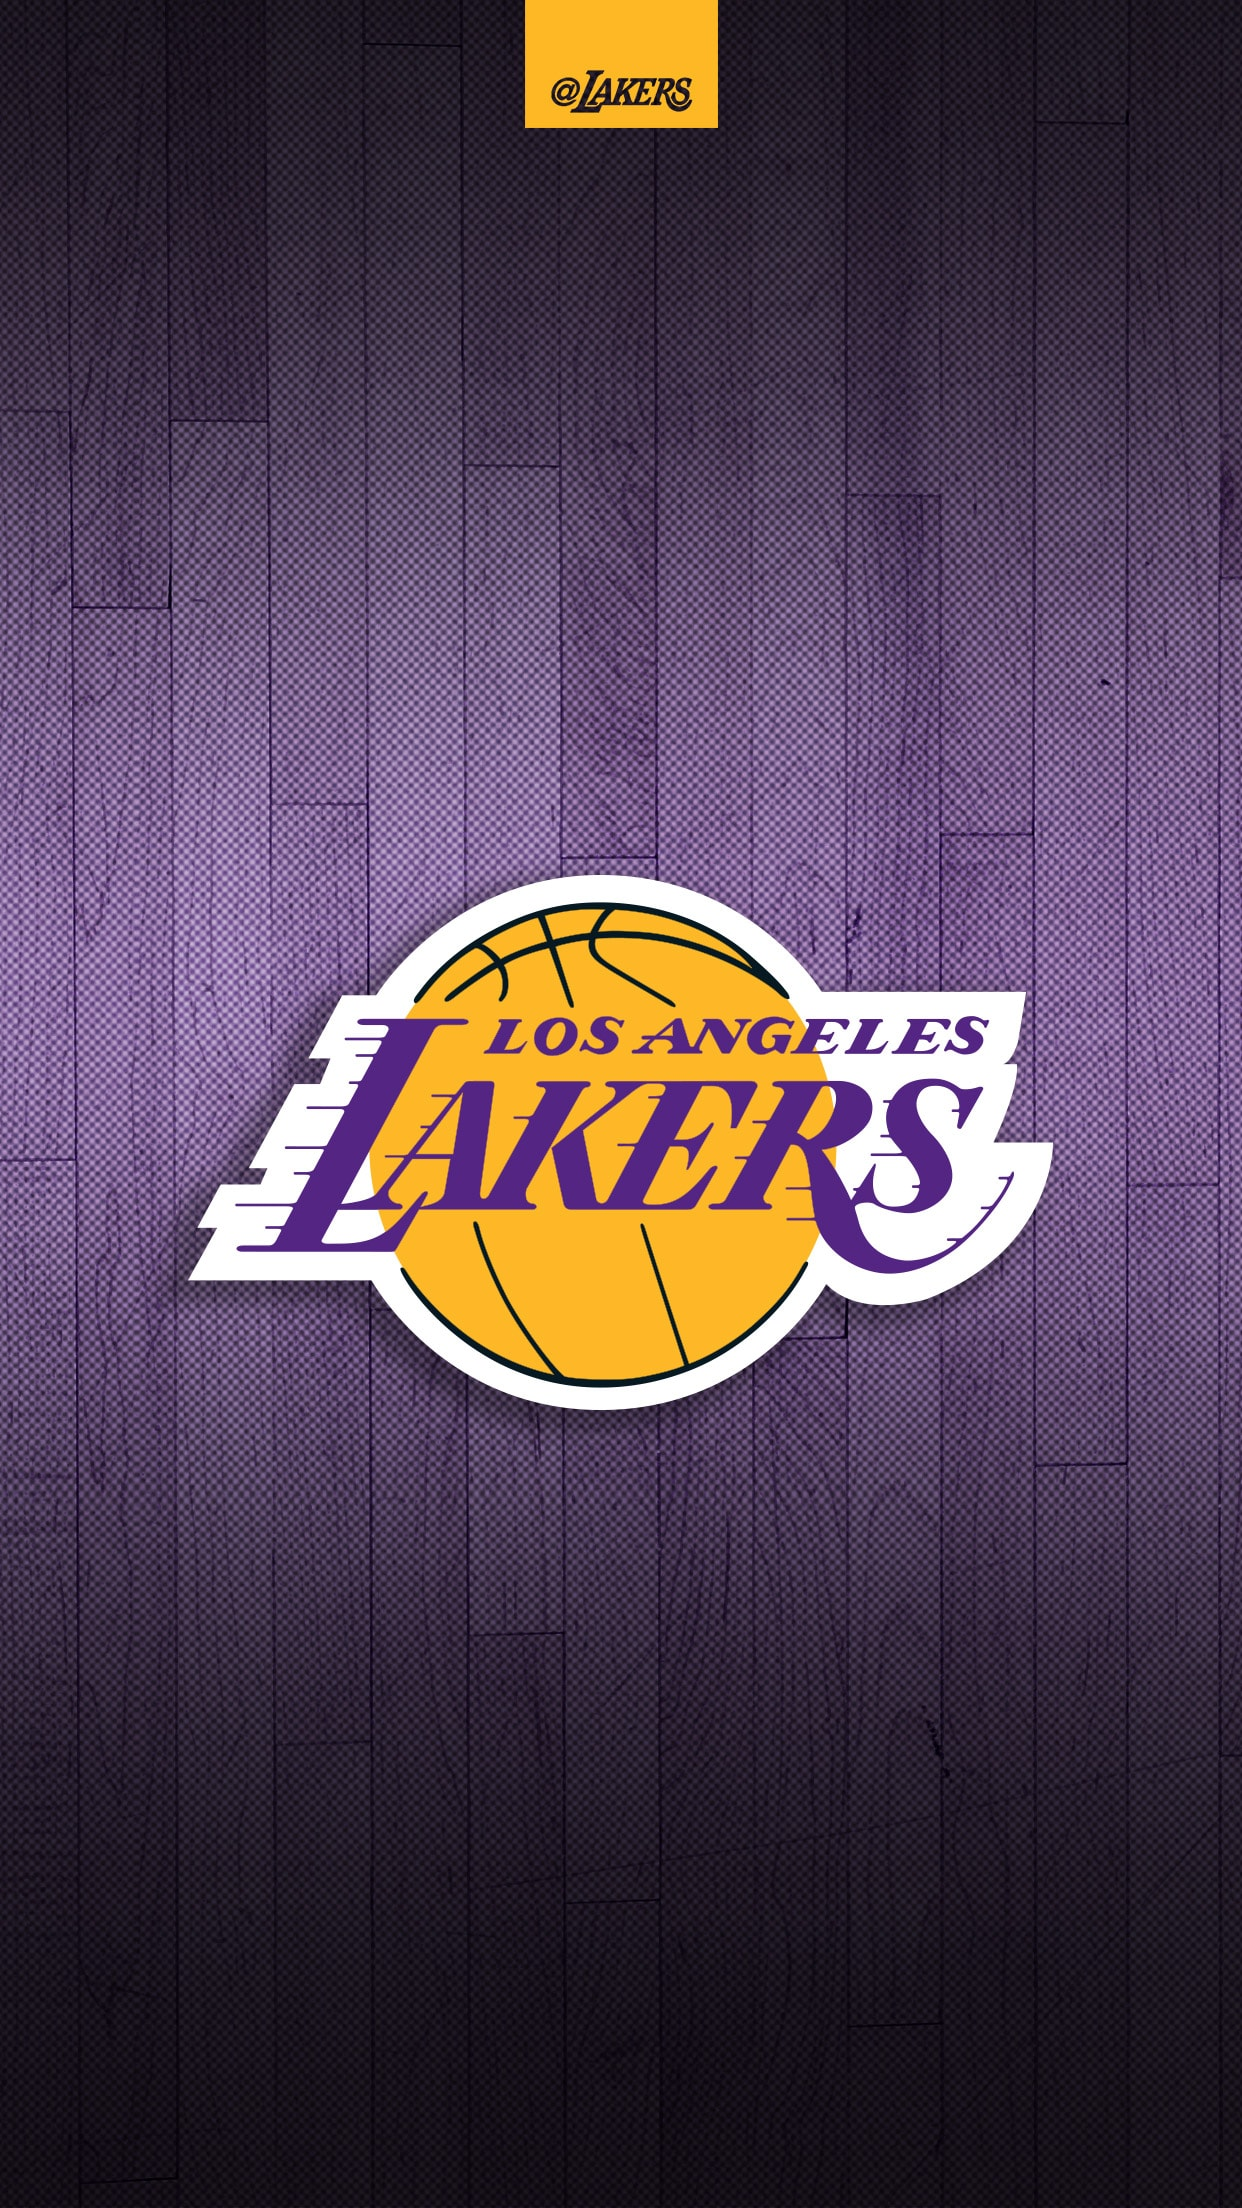 Los Angeles Lakers Logo >> Lakers Wallpapers and Infographics | Los Angeles Lakers